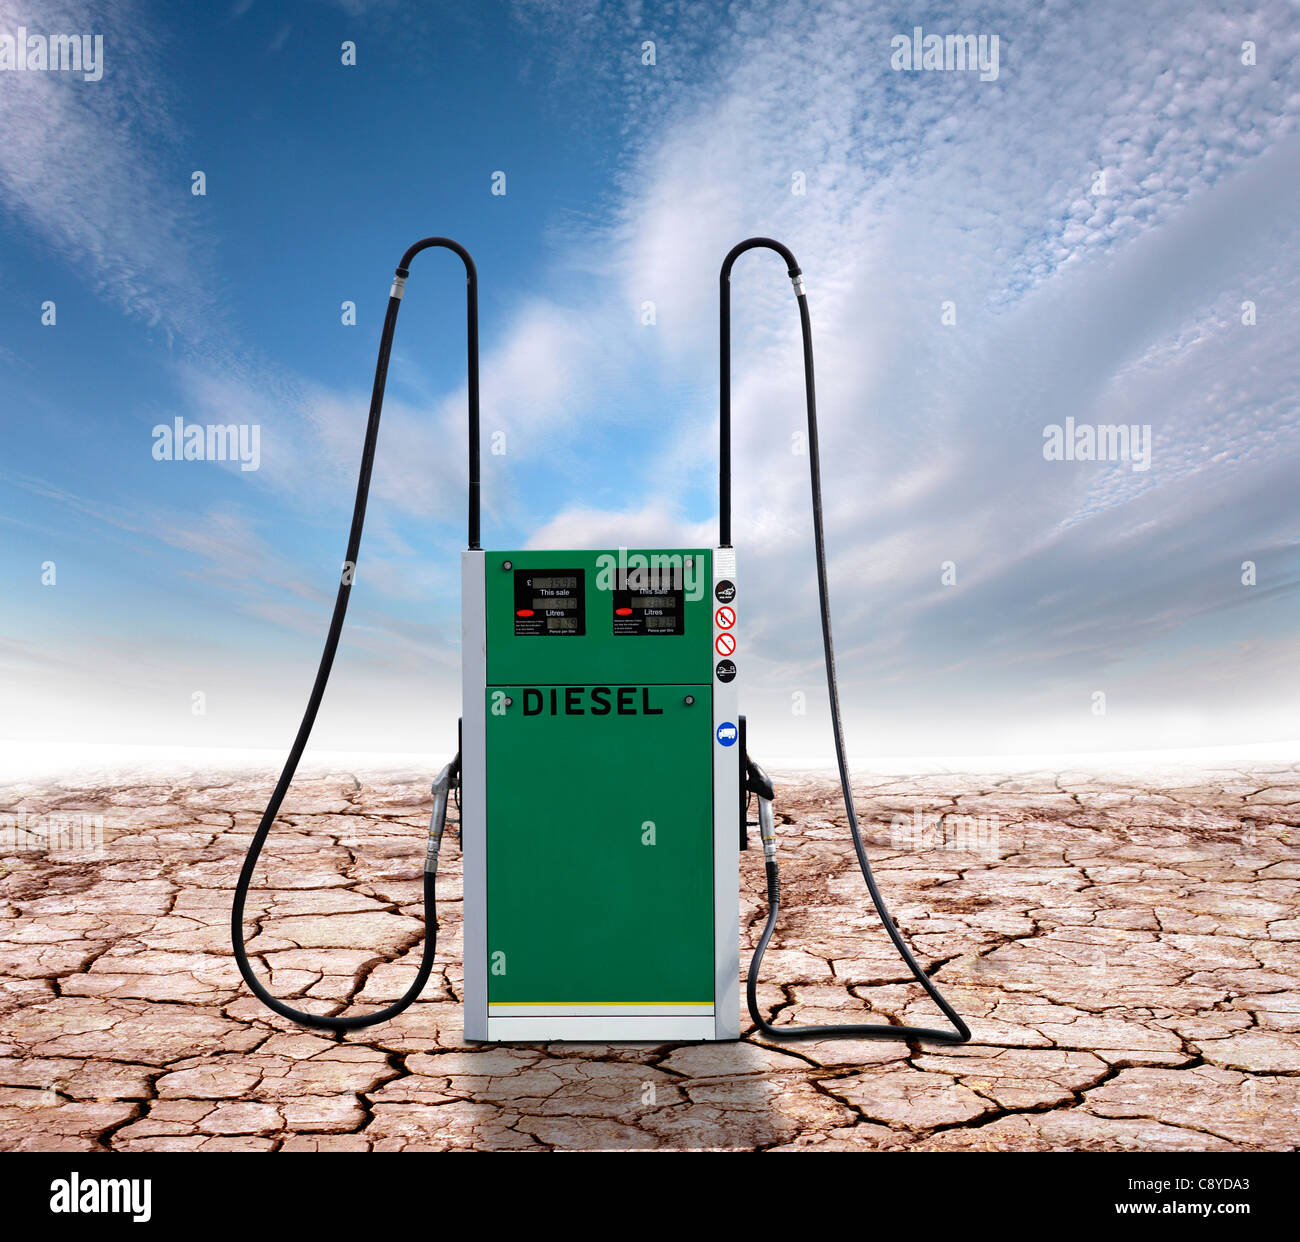 Diesel pump on a cracked earth background, representing climate change due to use of fossil fuels. - Stock Image